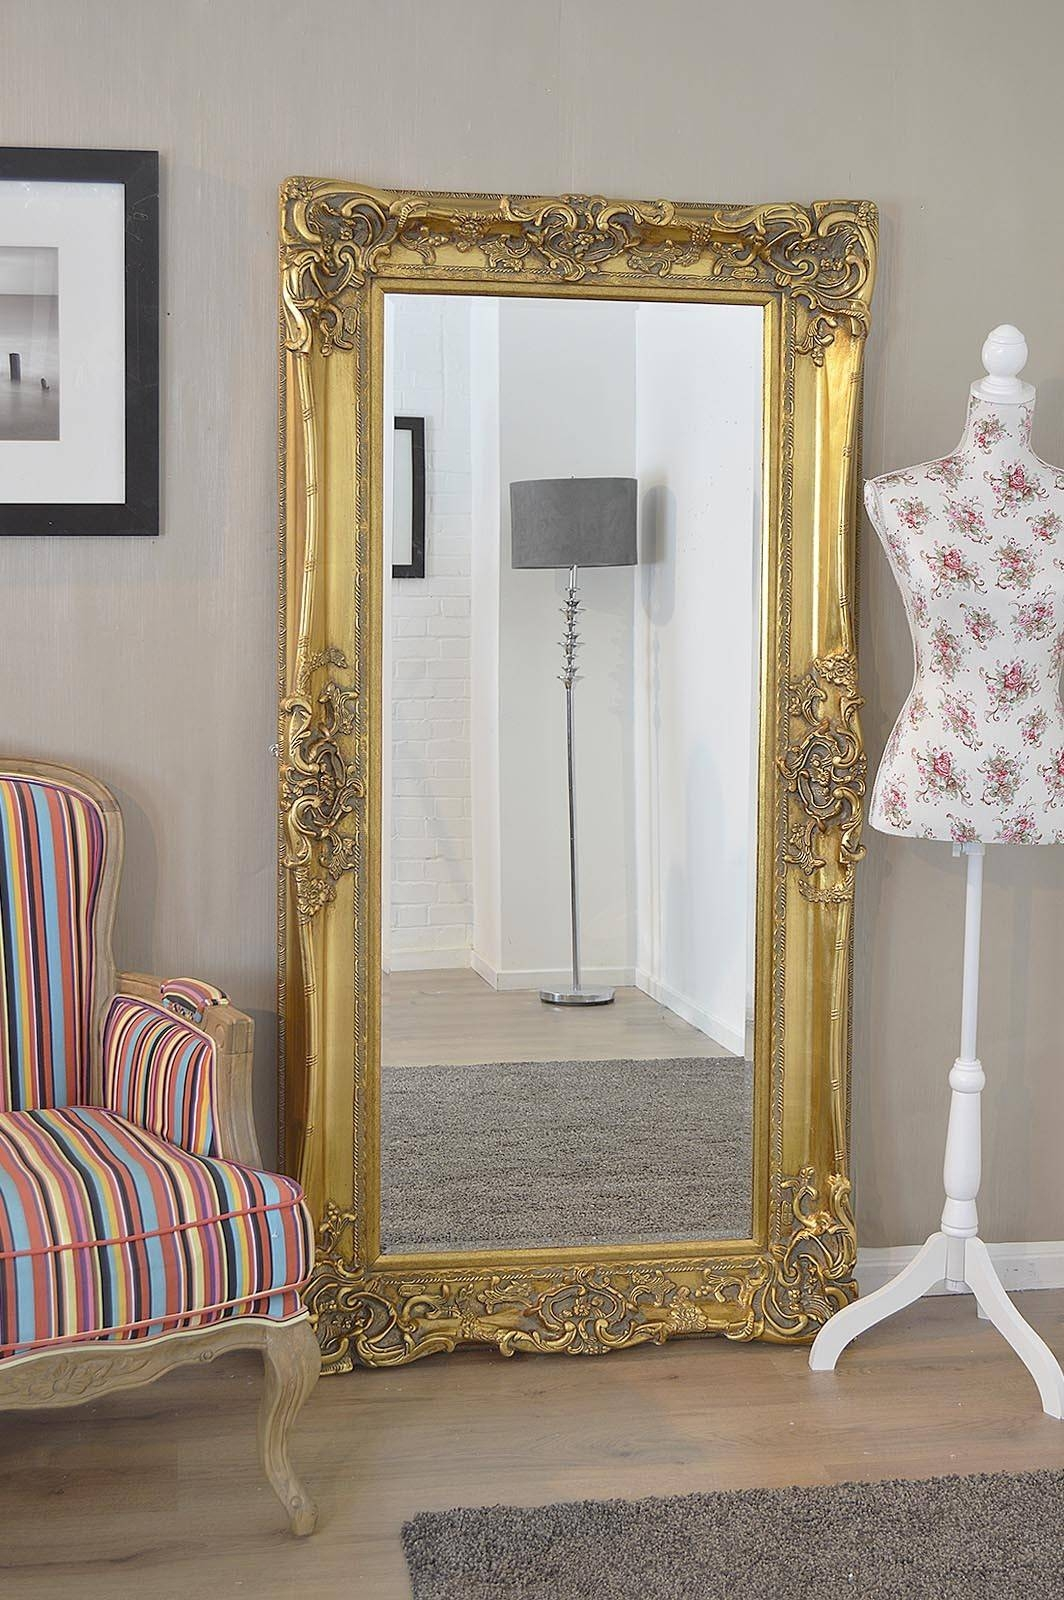 Ornate Mirrors For Sale 125 Awesome Exterior With Large Wall regarding Ornate Wall Mirrors (Image 22 of 25)